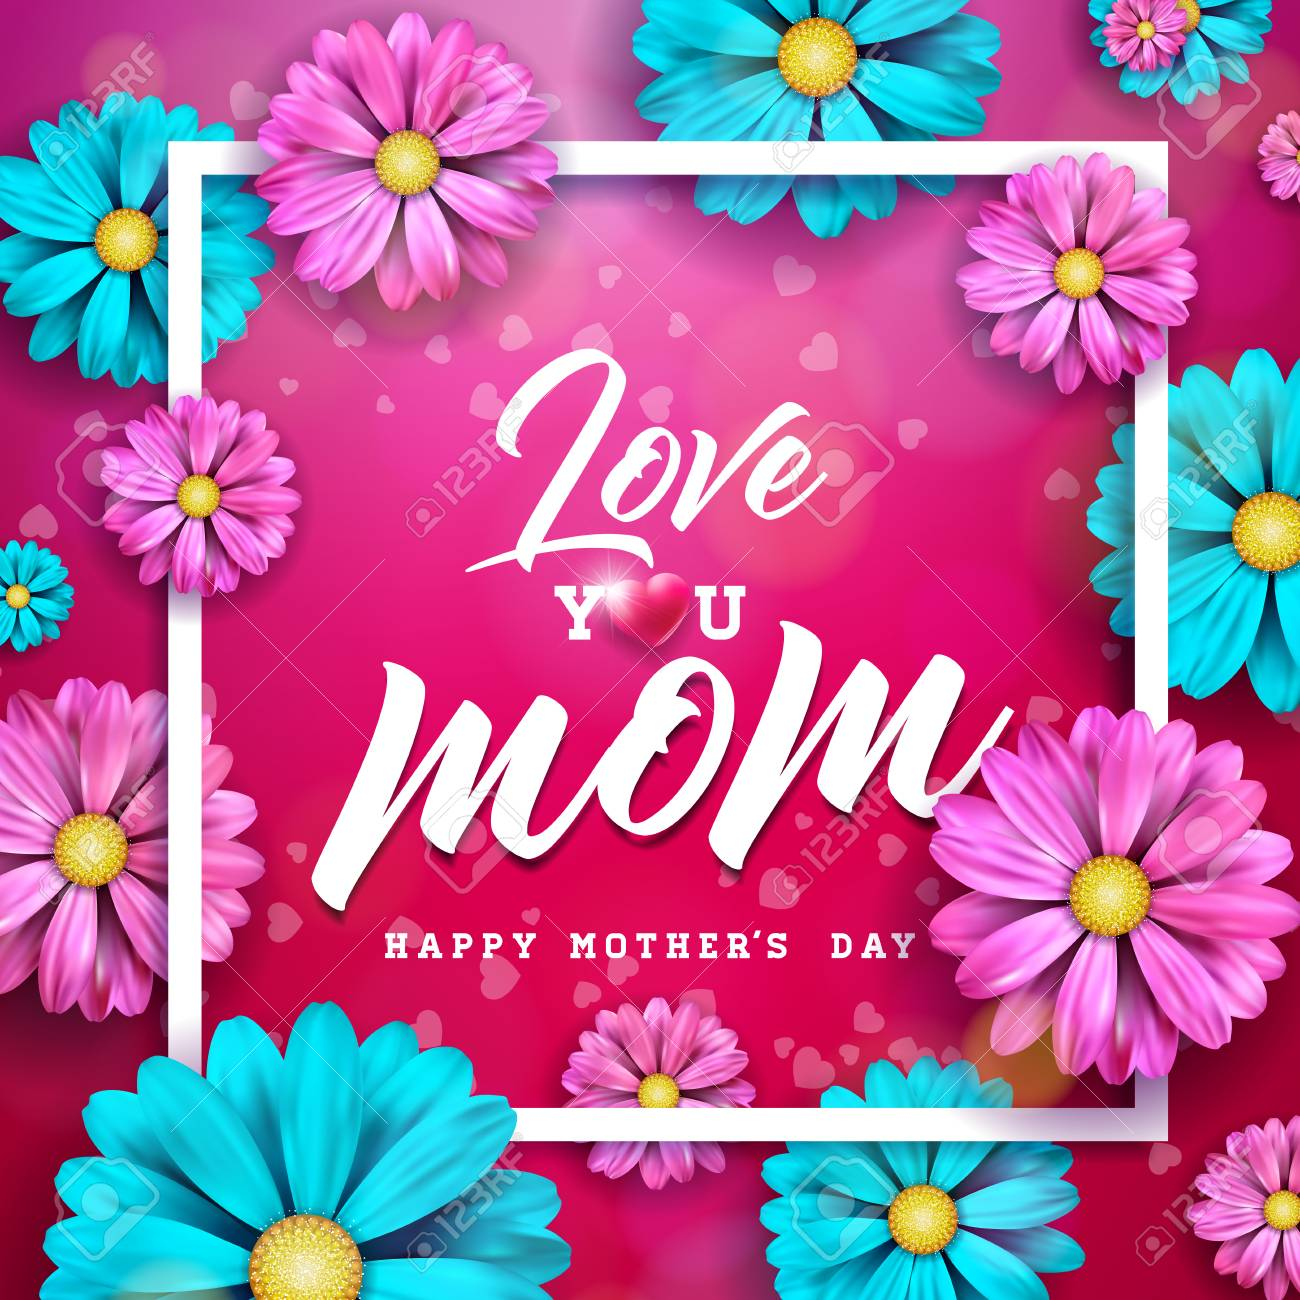 Astonishing Happy Mothers Day Greeting Card Design With Flower And Birthday Cards Printable Opercafe Filternl